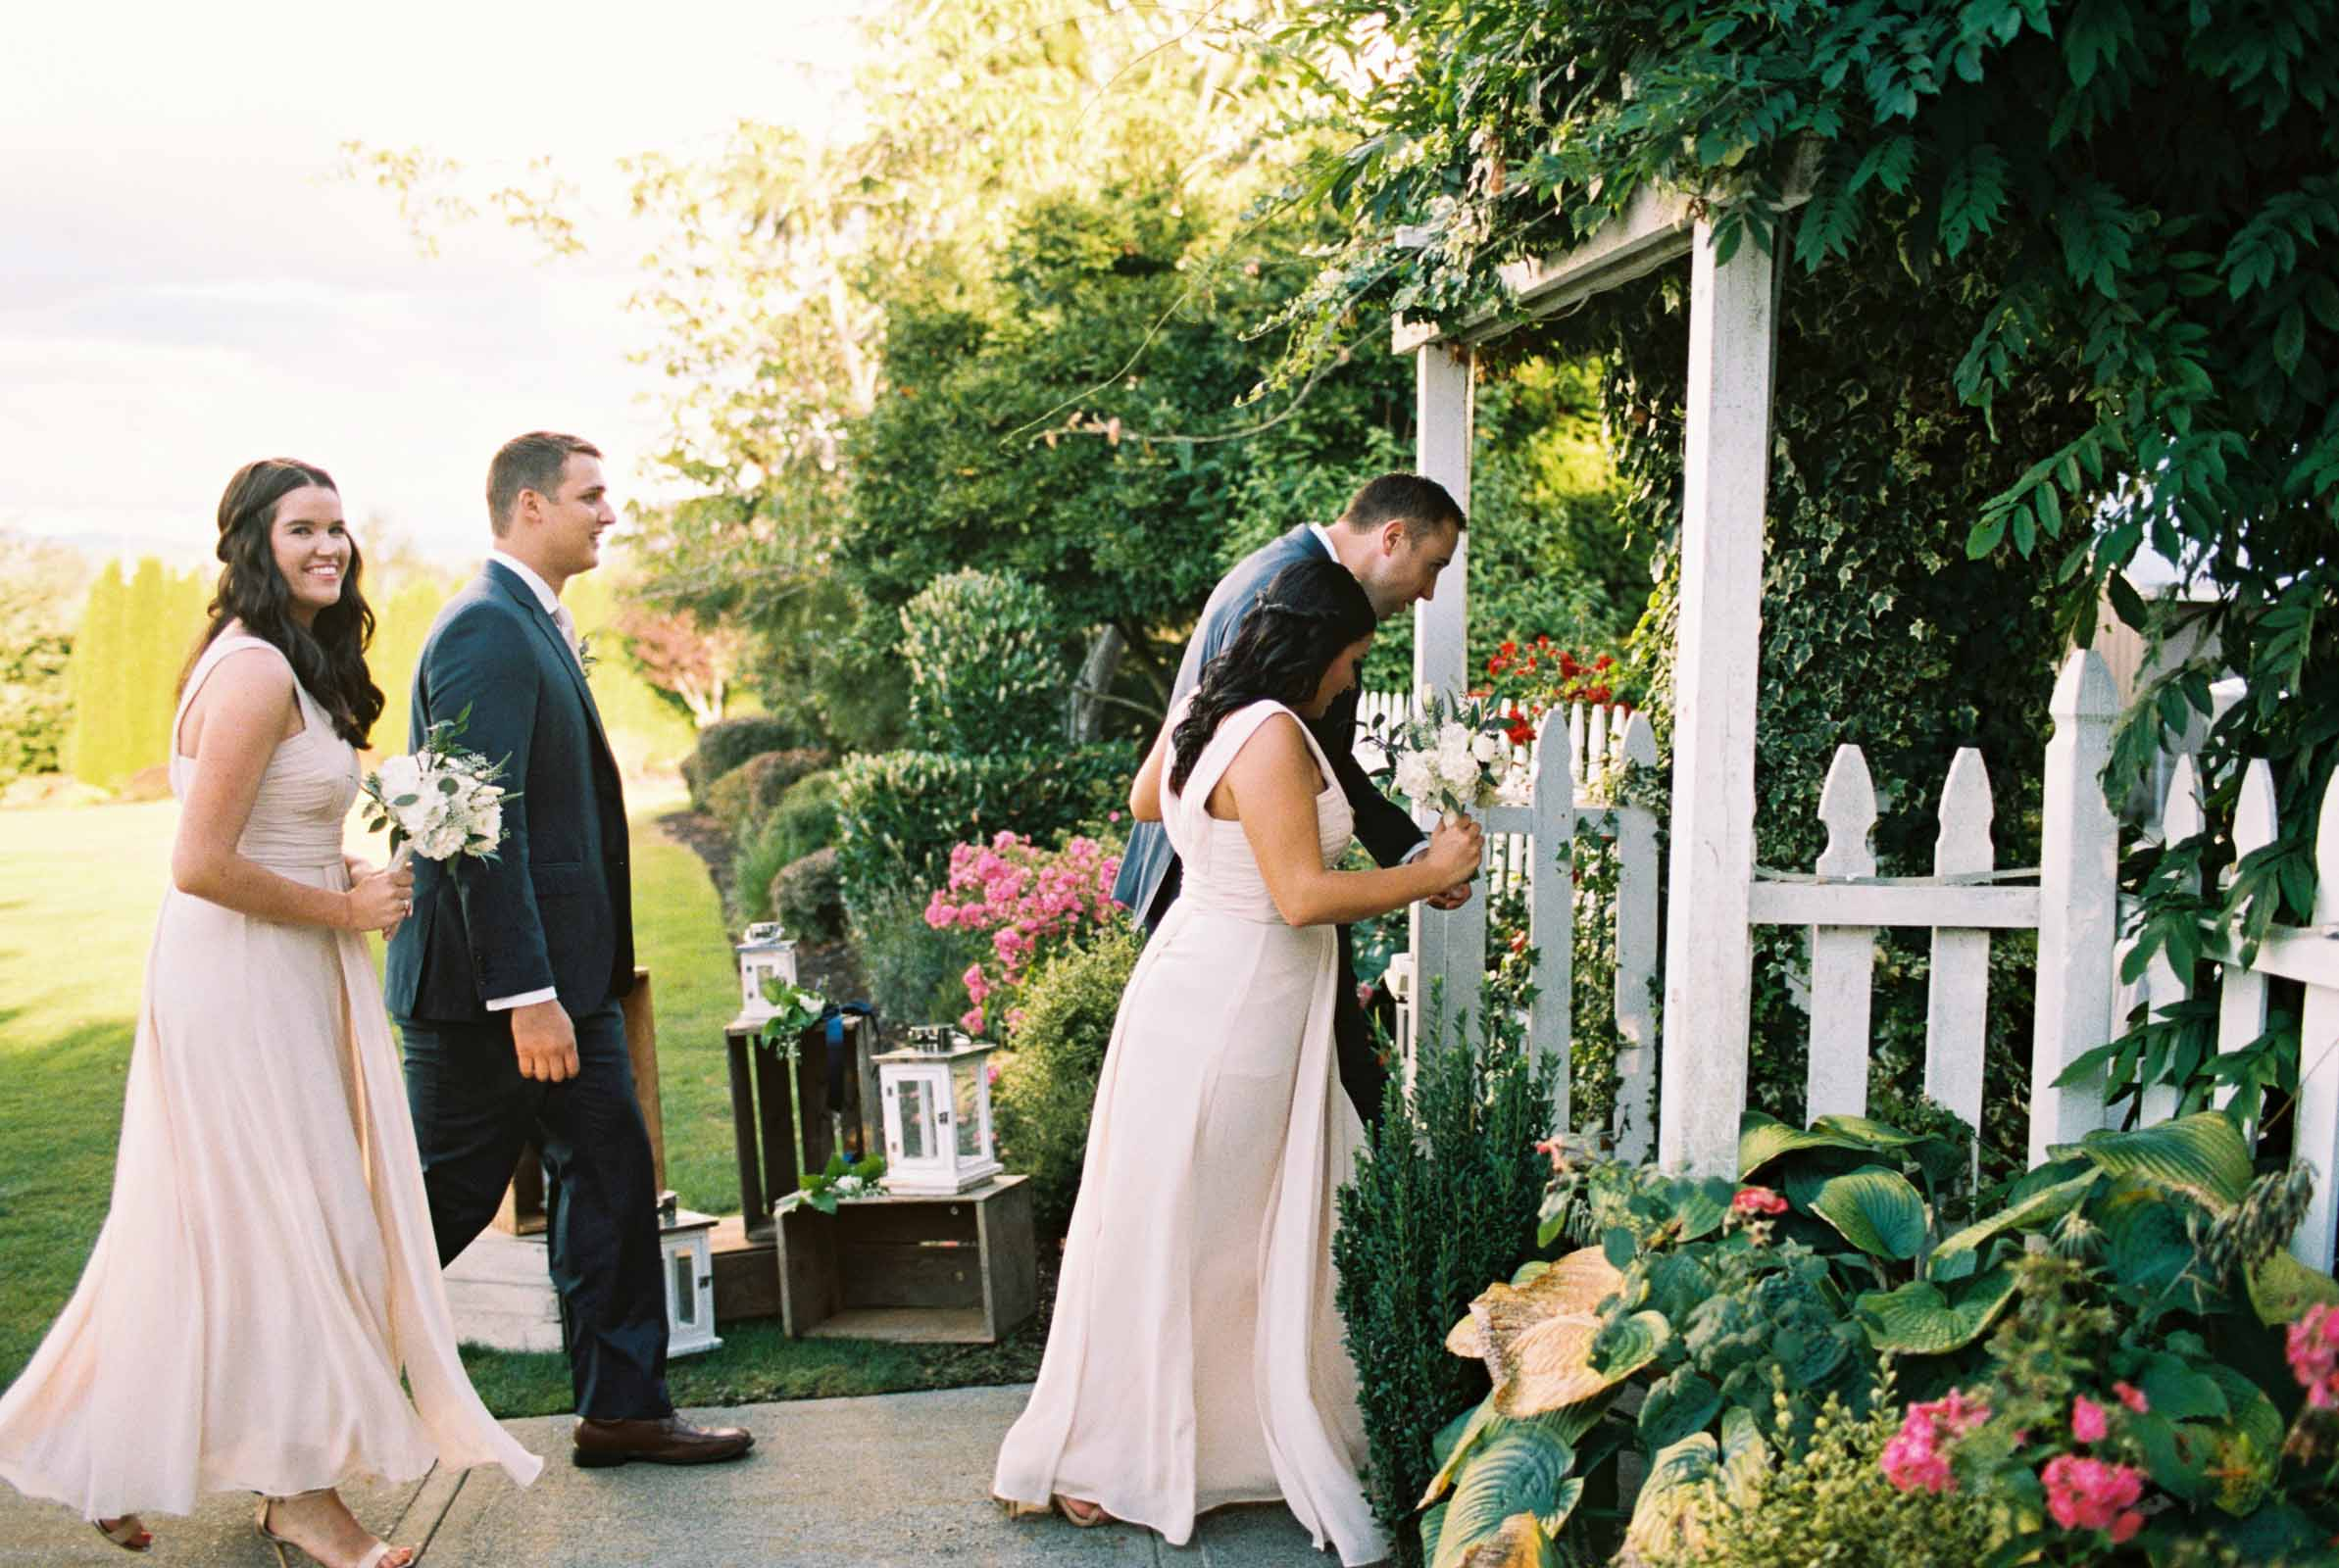 Bridesmaids and groomsmen leave a wedding ceremony at Lord Hill Farms